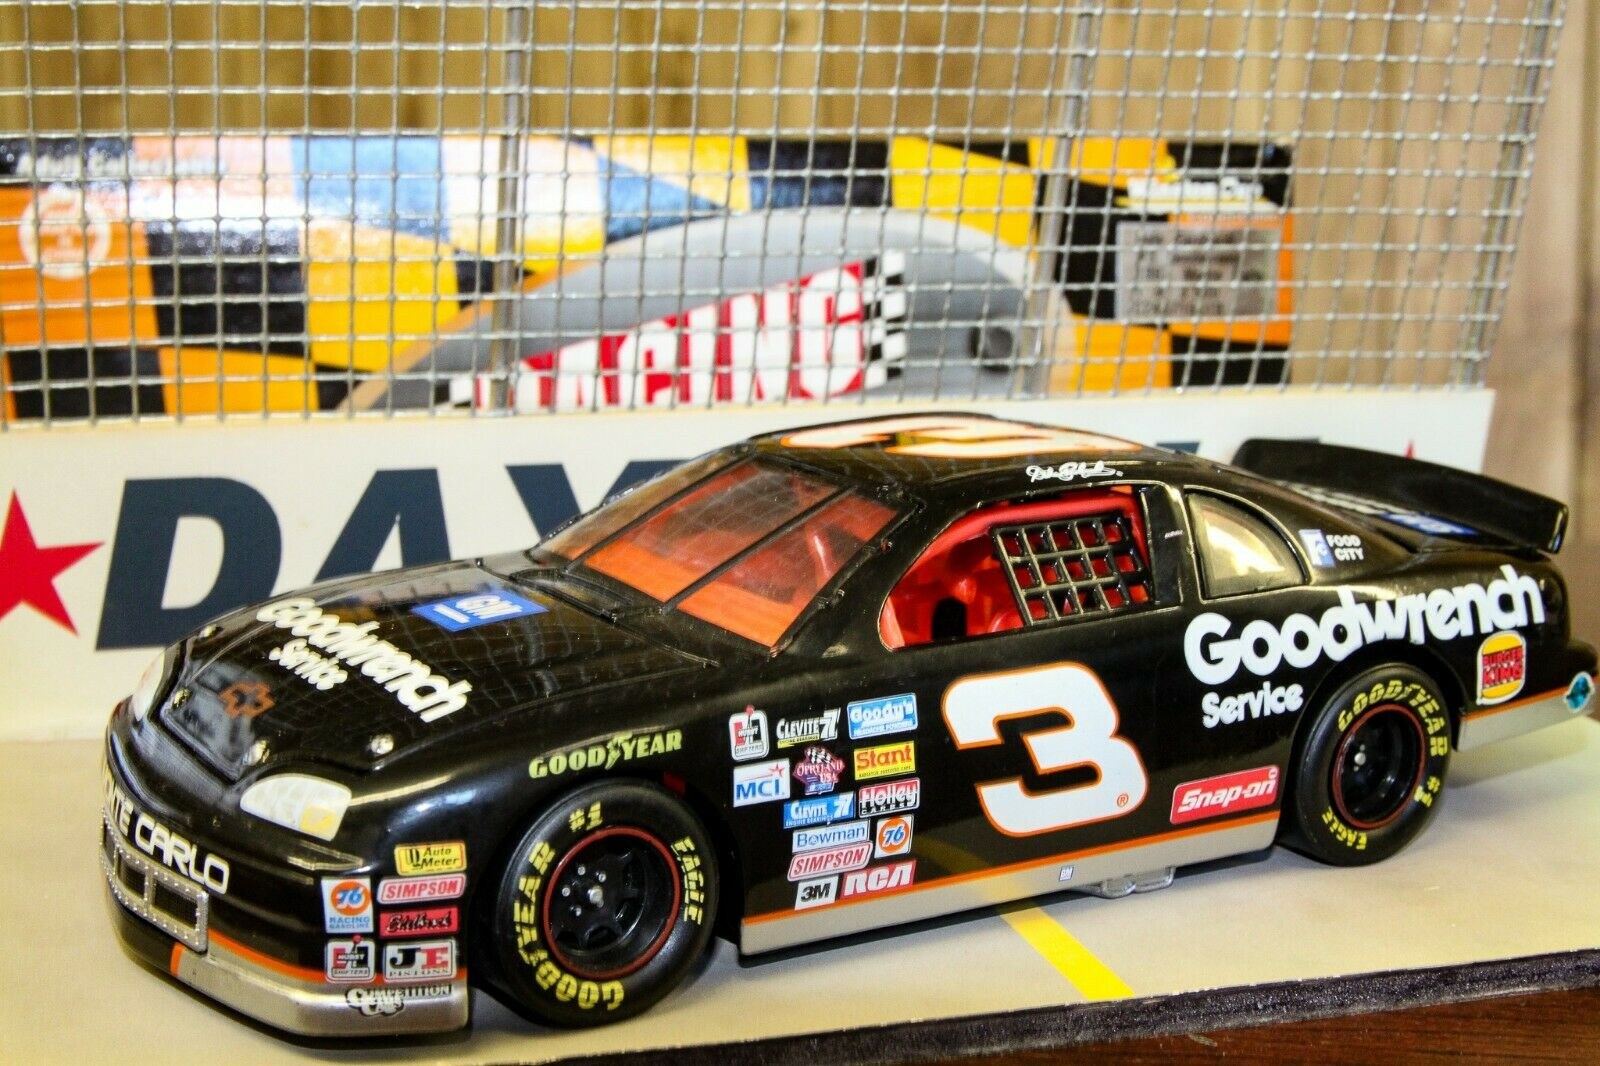 3 DALE EARNHARDT SR 1997 GM GOODWRENCH RCCA CLUB CWC 1 3500 ACTION 1 24